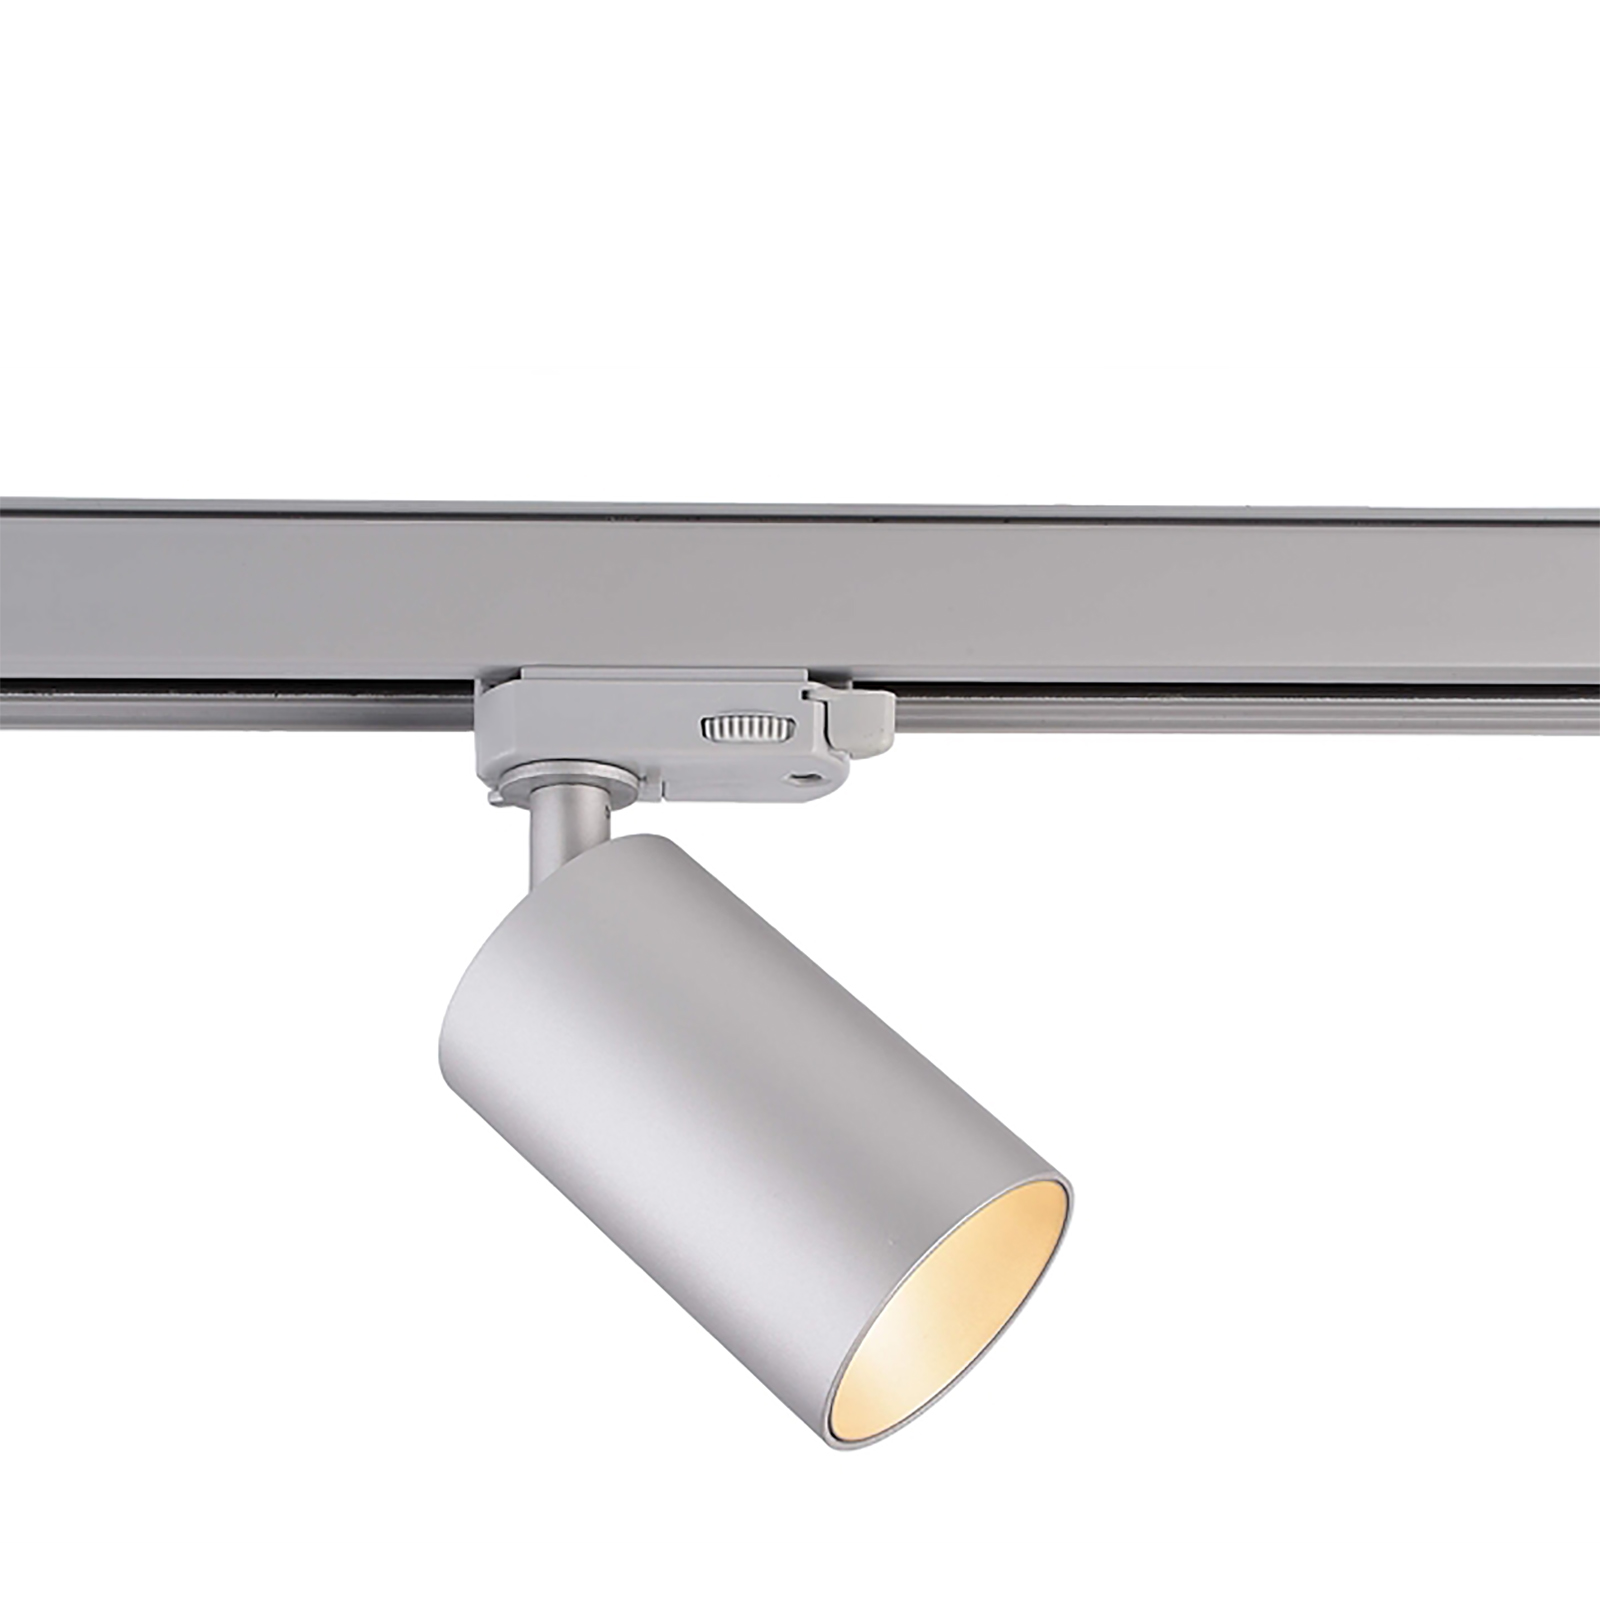 LED spotlight 8W three-phase rail track to the lighthouse modern GU10 lights shop office 230V